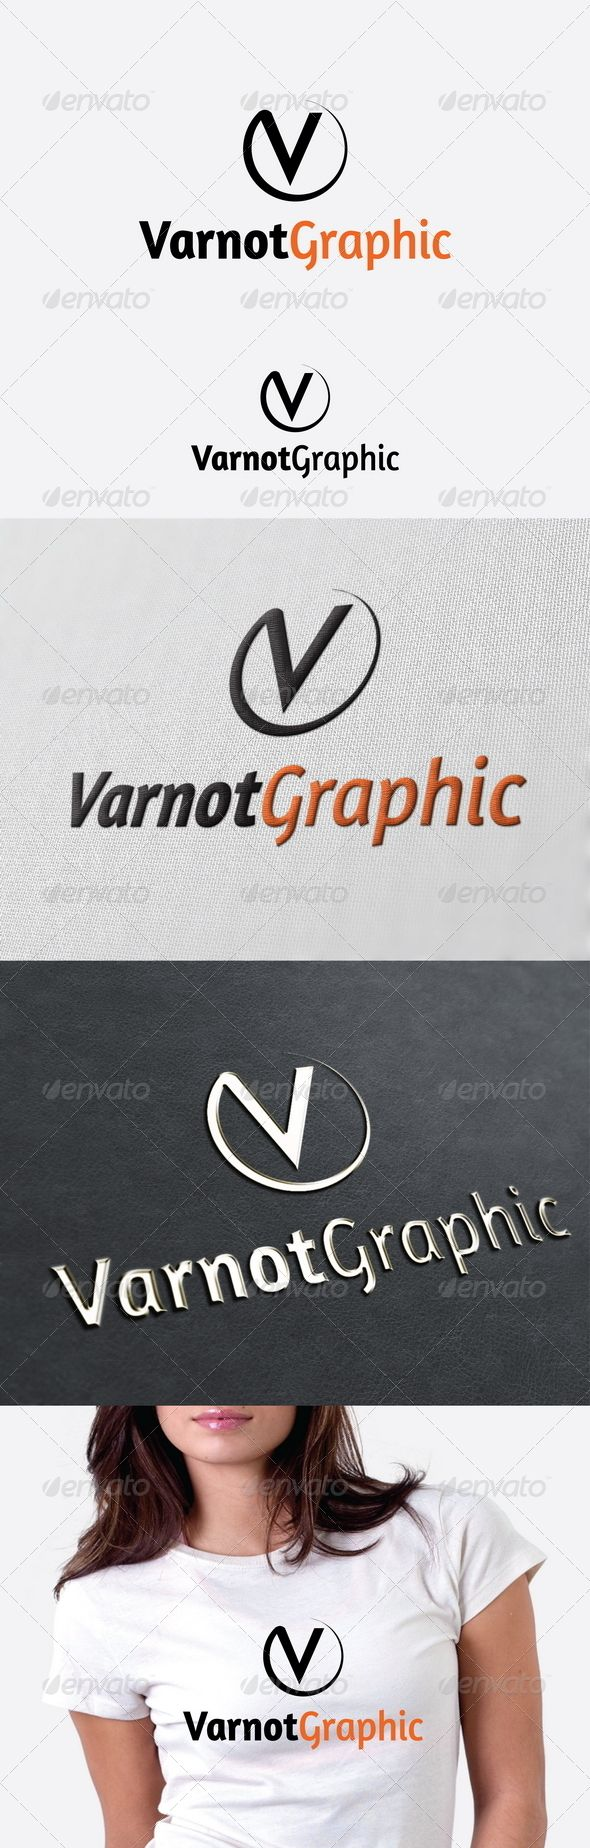 Varnot Graphic Logo Template GraphicRiver Re sizable